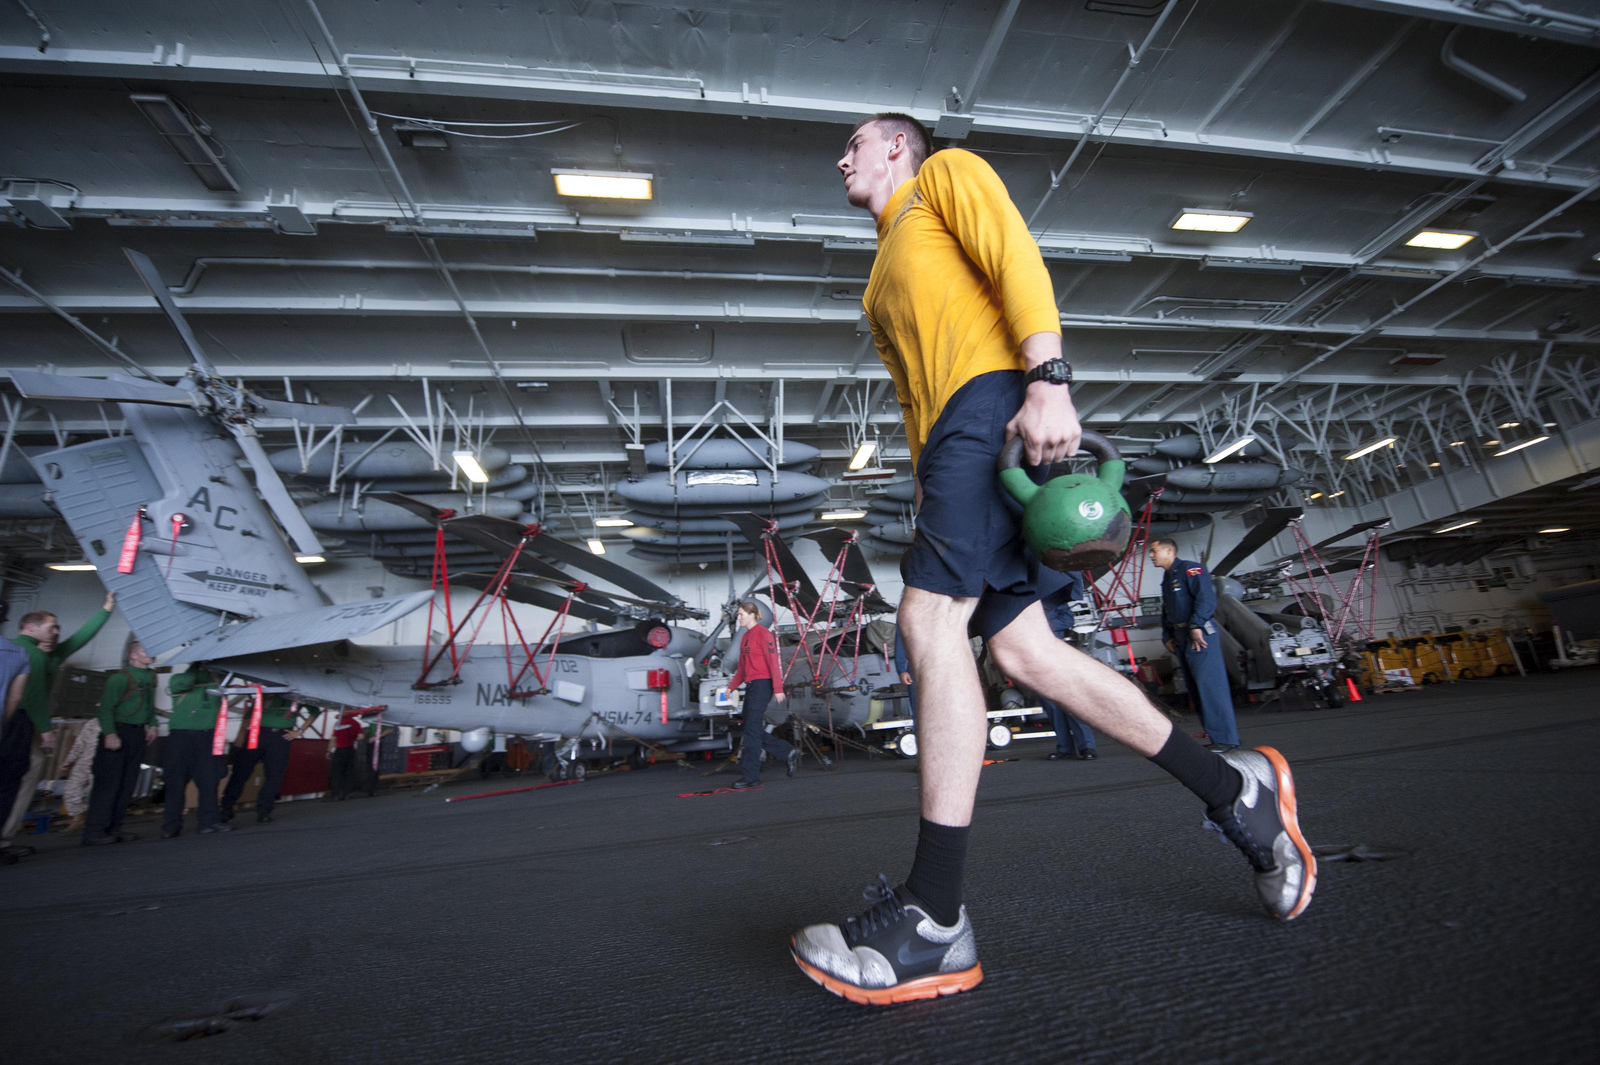 Kettlebell carries are a great way to begin including strongman style exercises for physical training.